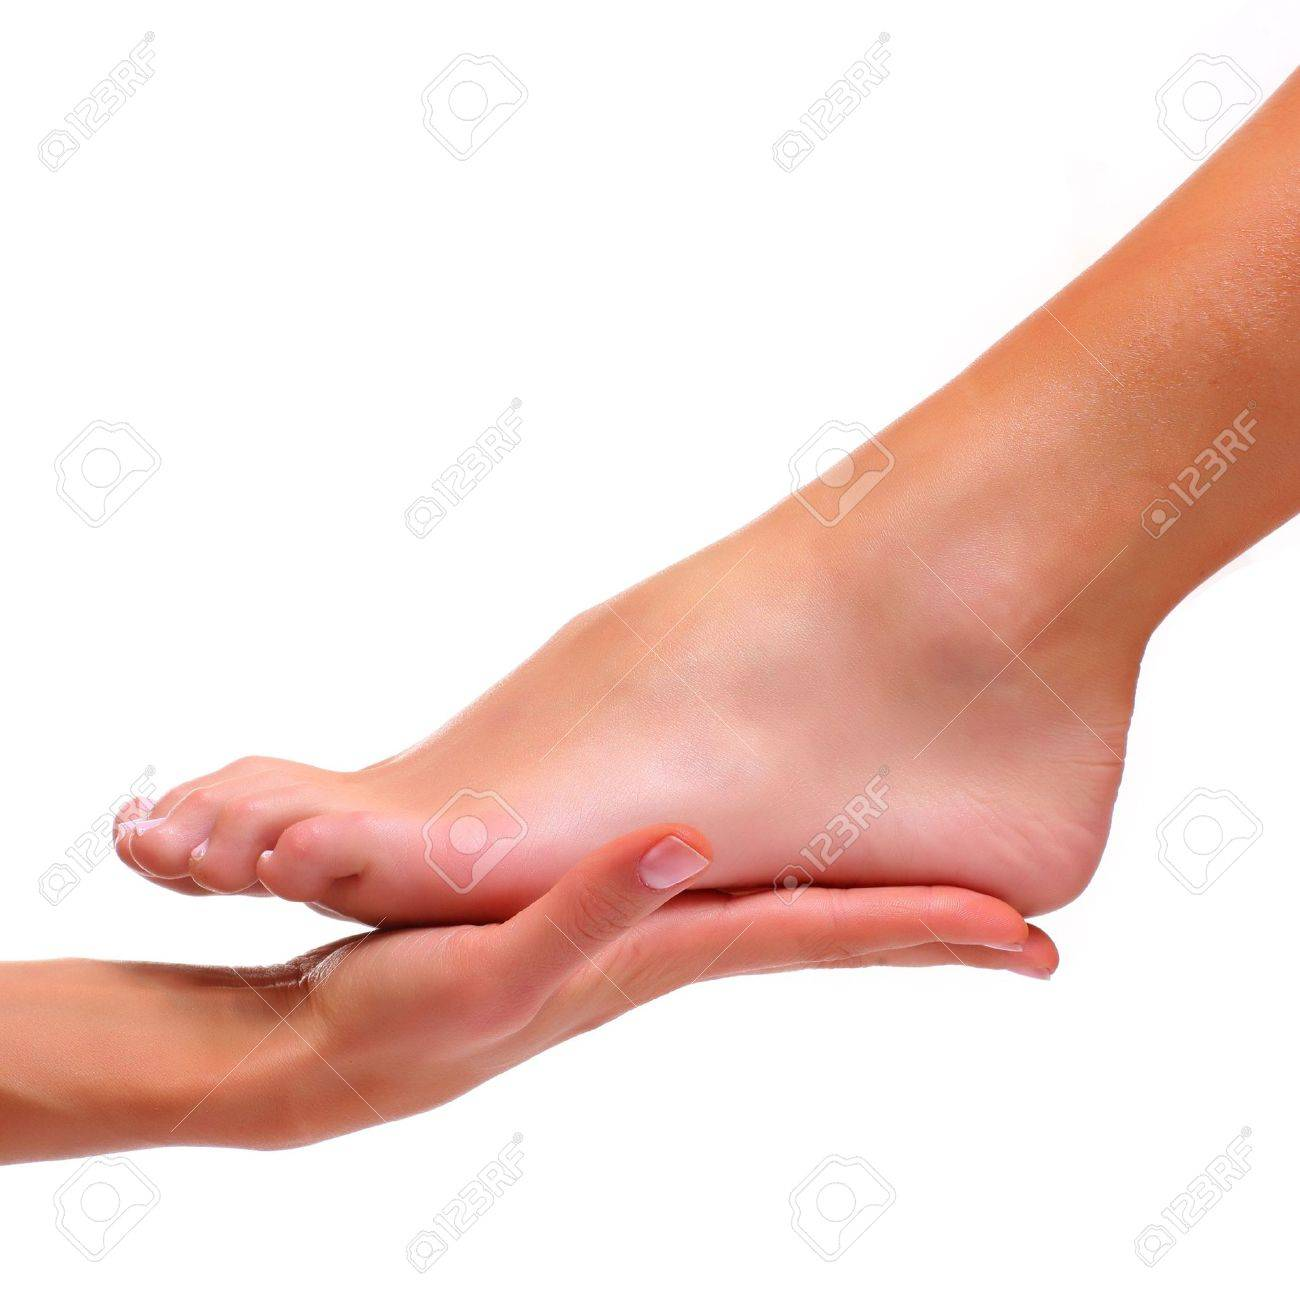 Foot of a female foot lays on a palm Stock Photo - 4681337